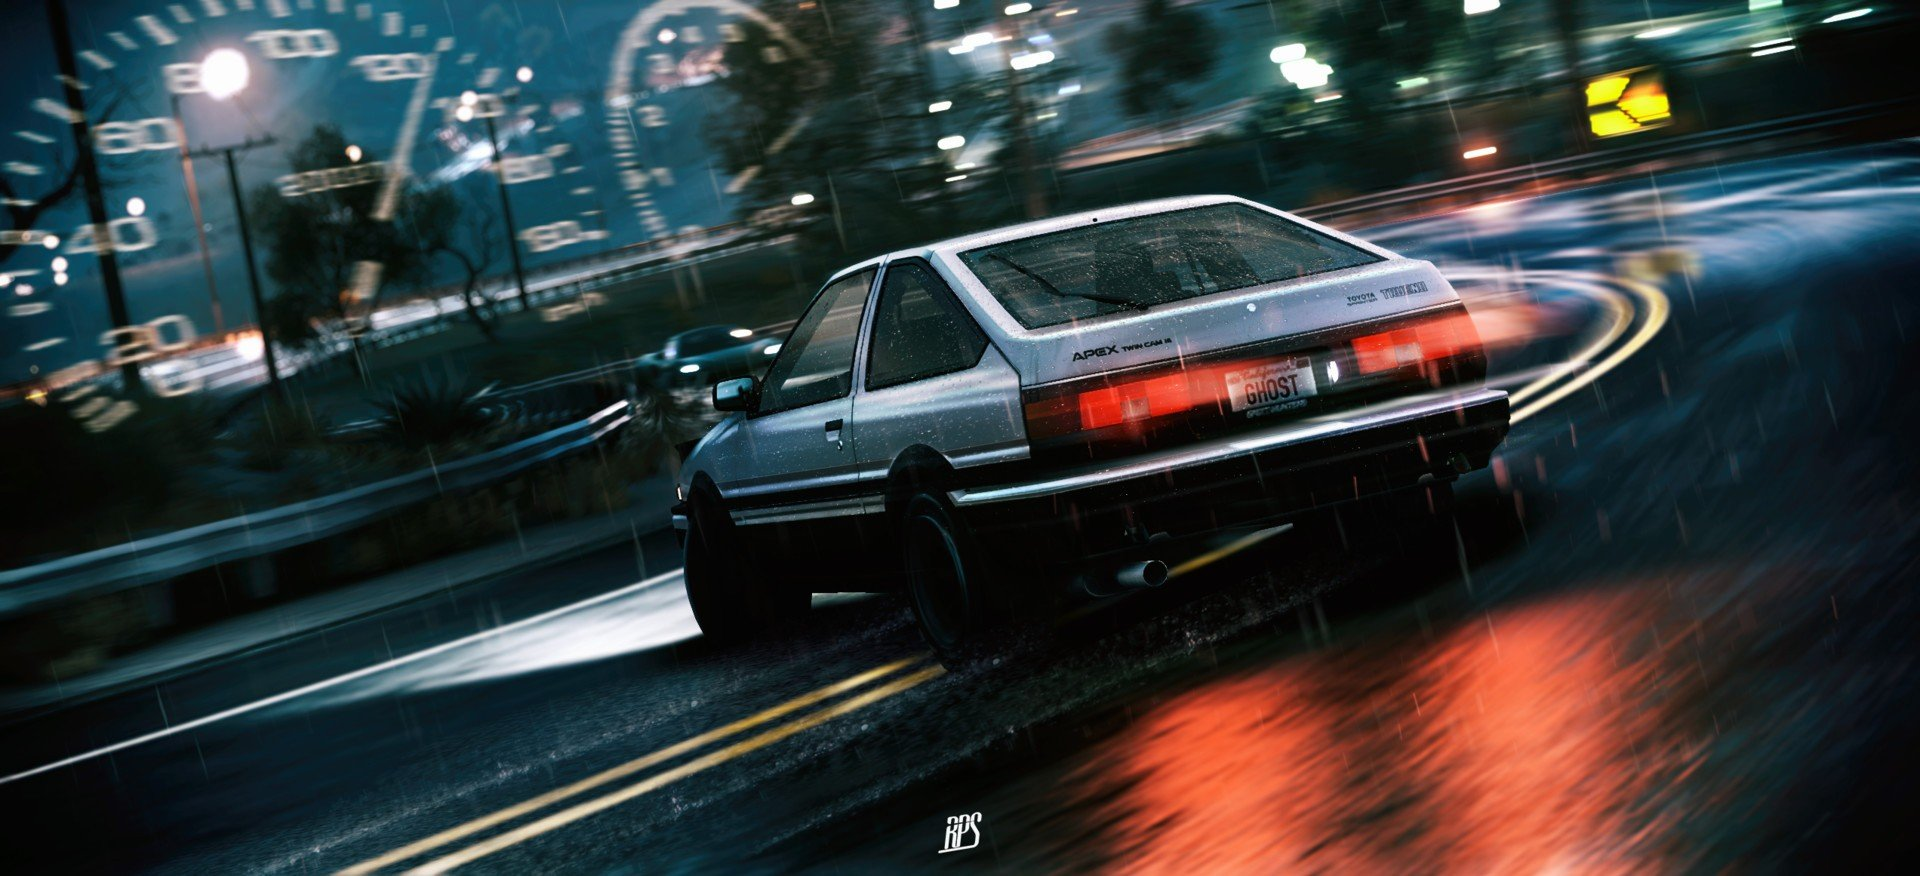 Car initial d drift toyota ae86 hd wallpapers desktop - Ae86 initial d wallpaper ...